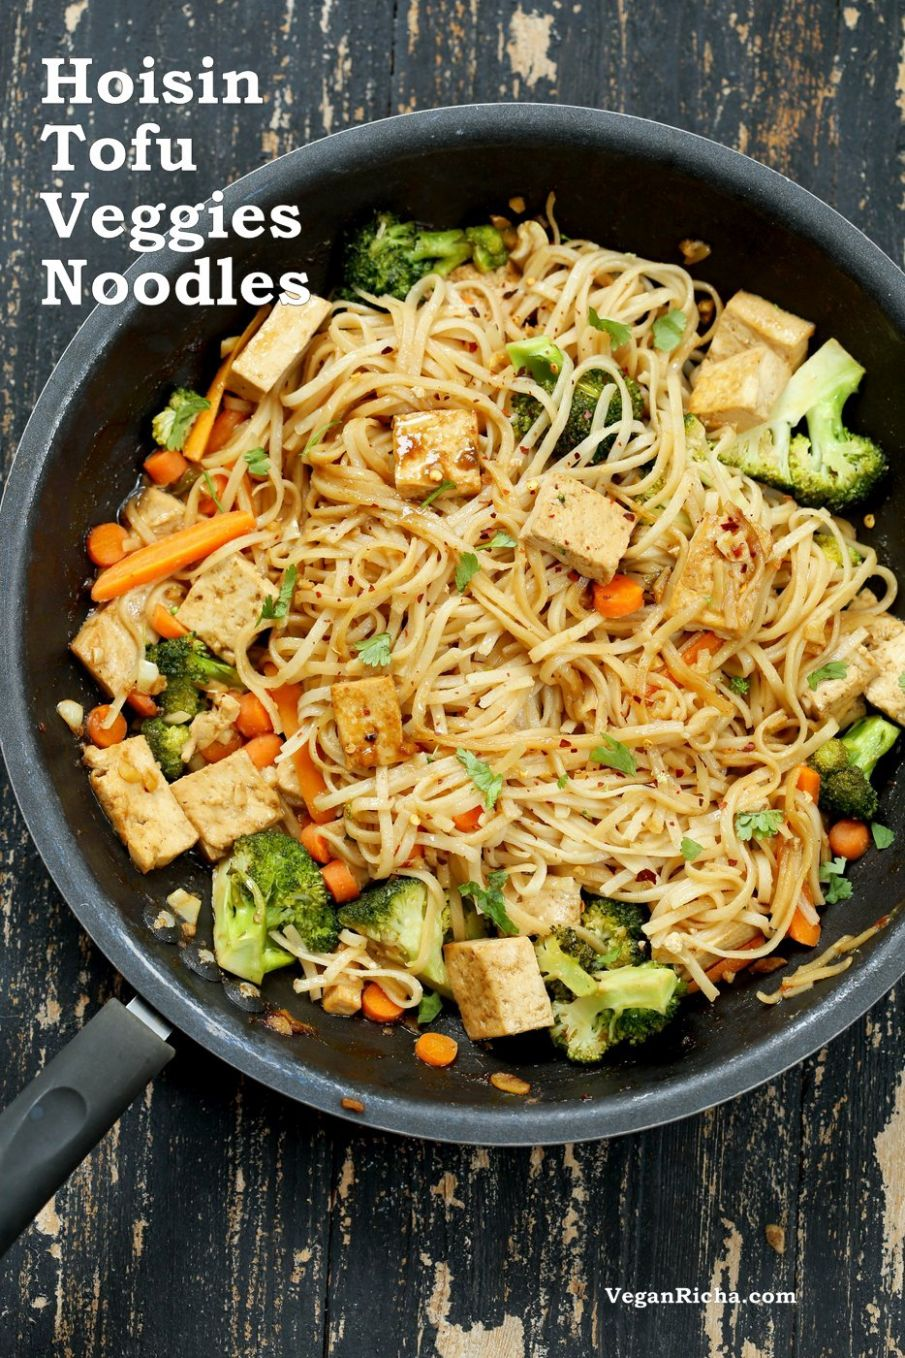 Tofu and Brown Rice Noodles in Hoisin Sauce - Recipes Vegetarian Noodles